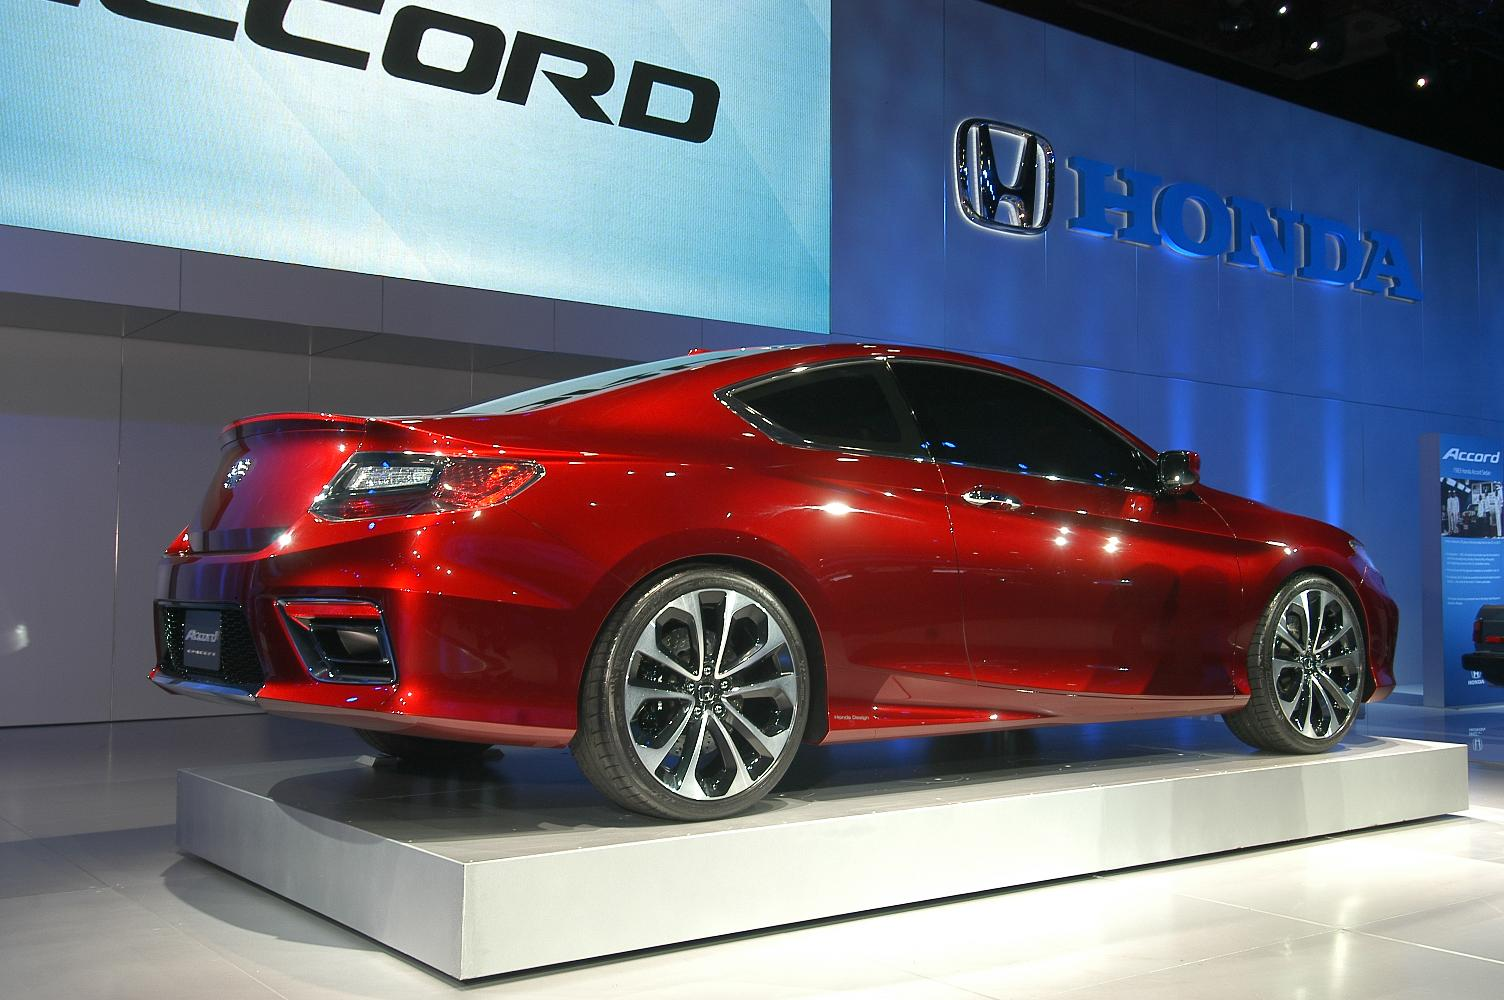 Honda Accord NAIAS 2012 4